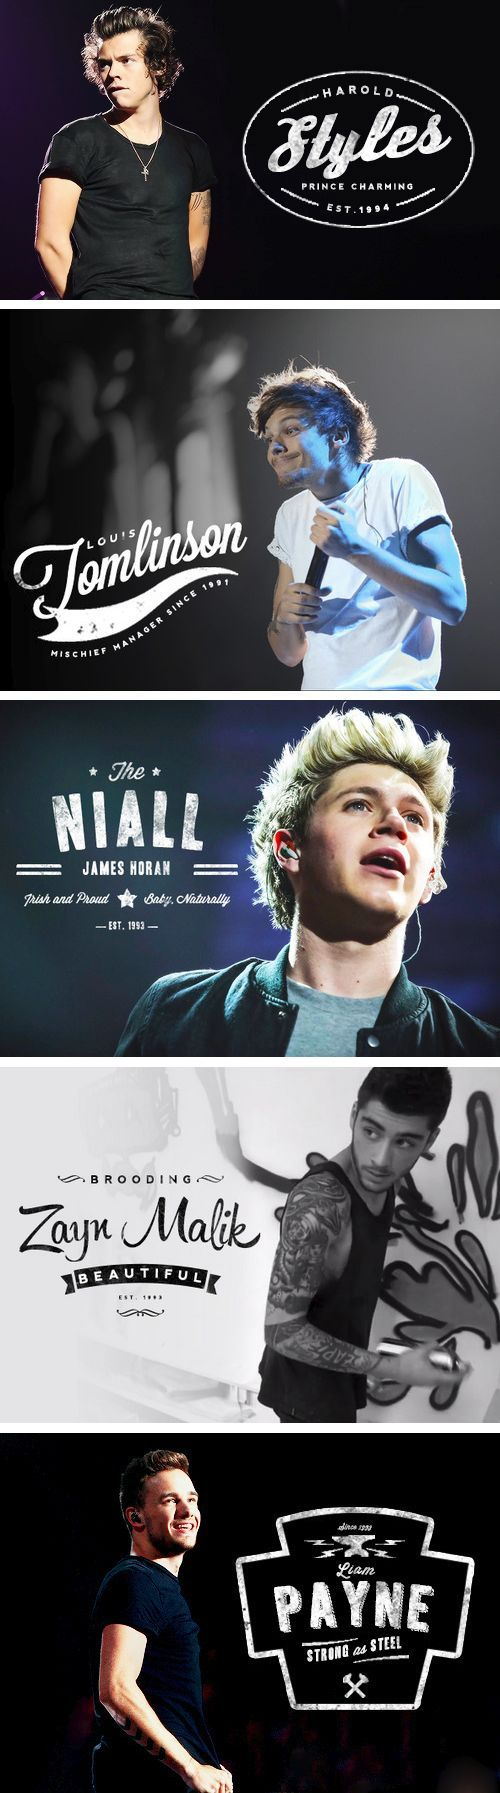 #4Yearsof1D Click through to write a note to the guys and I'll share it to the guys' twitter accounts. Follow RP on twitter @RespectPoint1D to watch out for your note! Thanks lovelies ♥